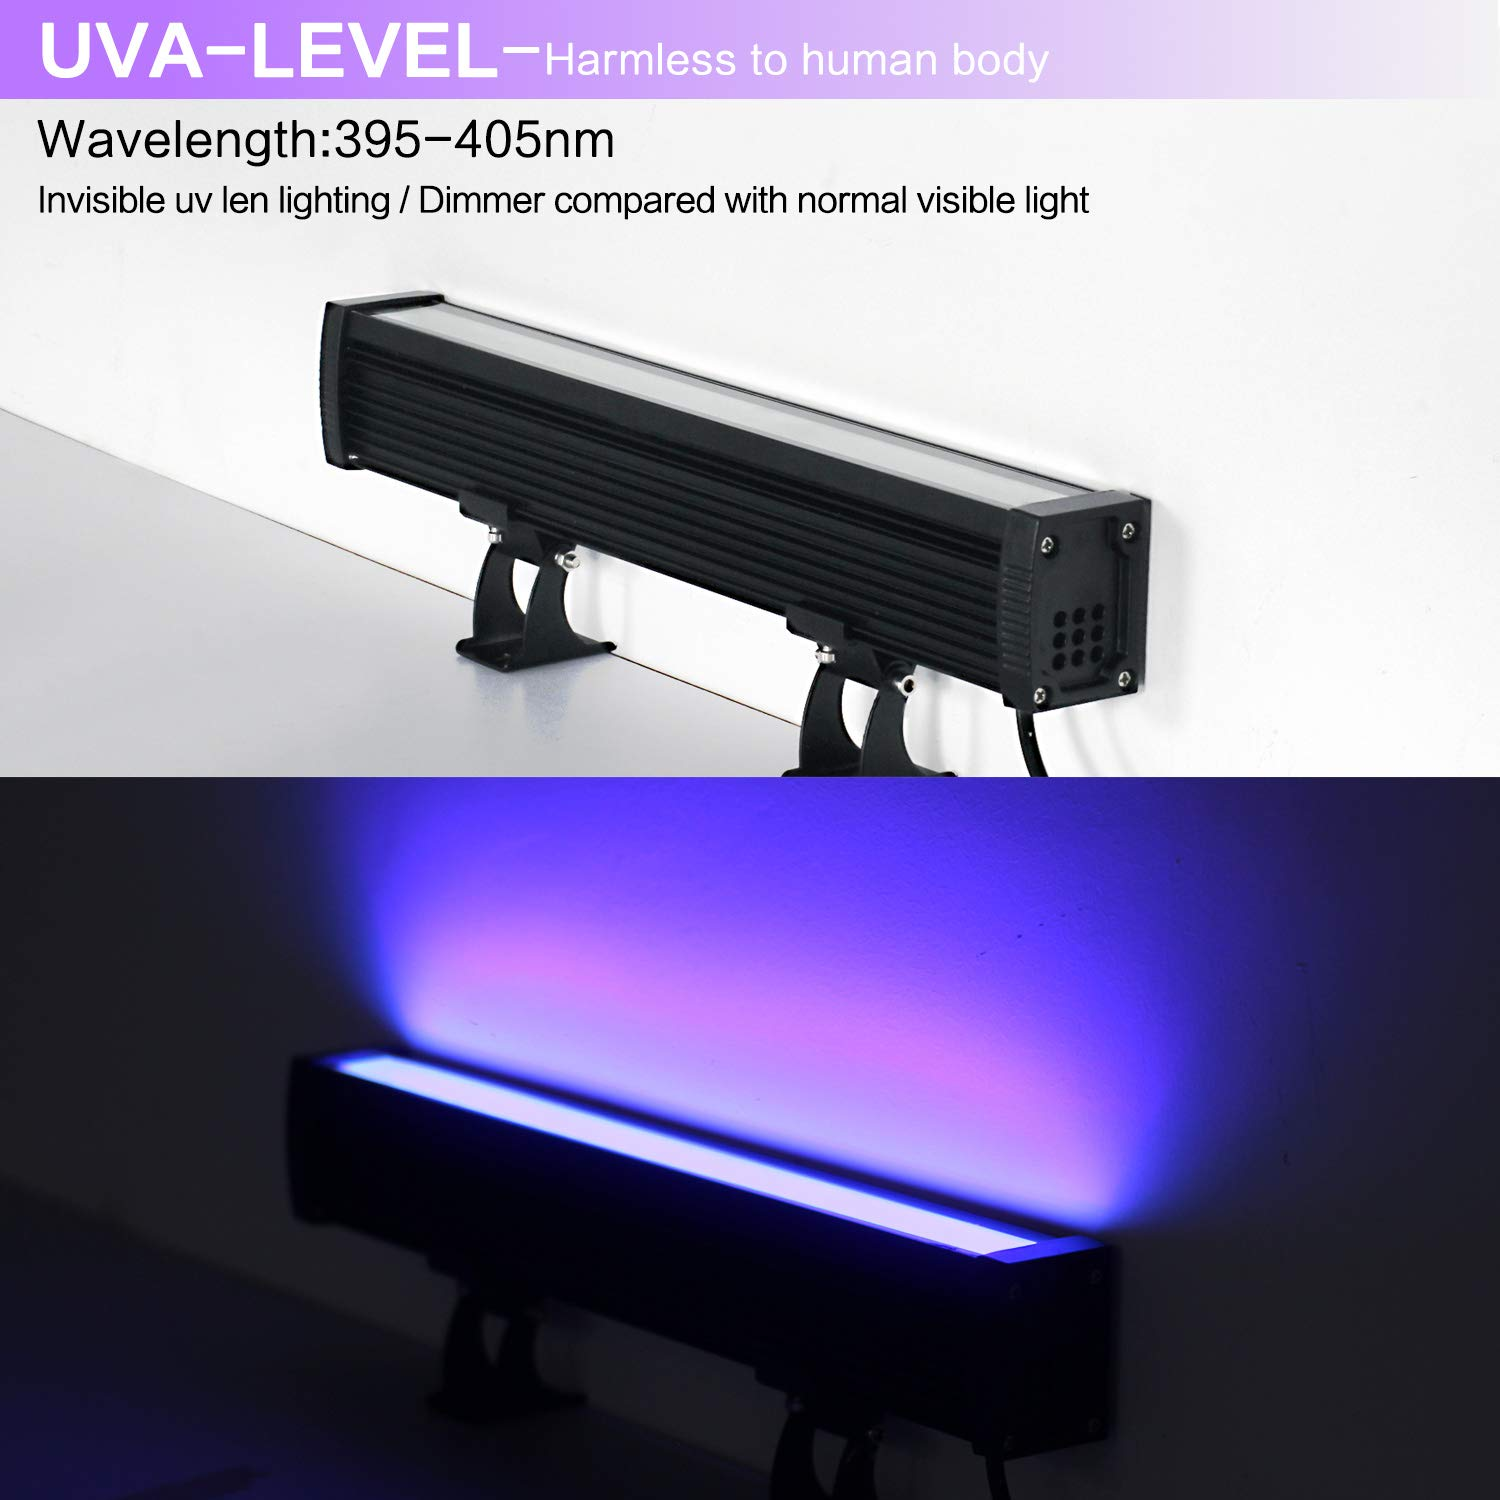 Body Paint Halloween 24W Blacklight Bar with 5Ft US Plug and Switch FAISHILAN 2 Pack UV LED Black Light Glow in The Dark Party Supplies for Stage Lighting Fluorescent Poster